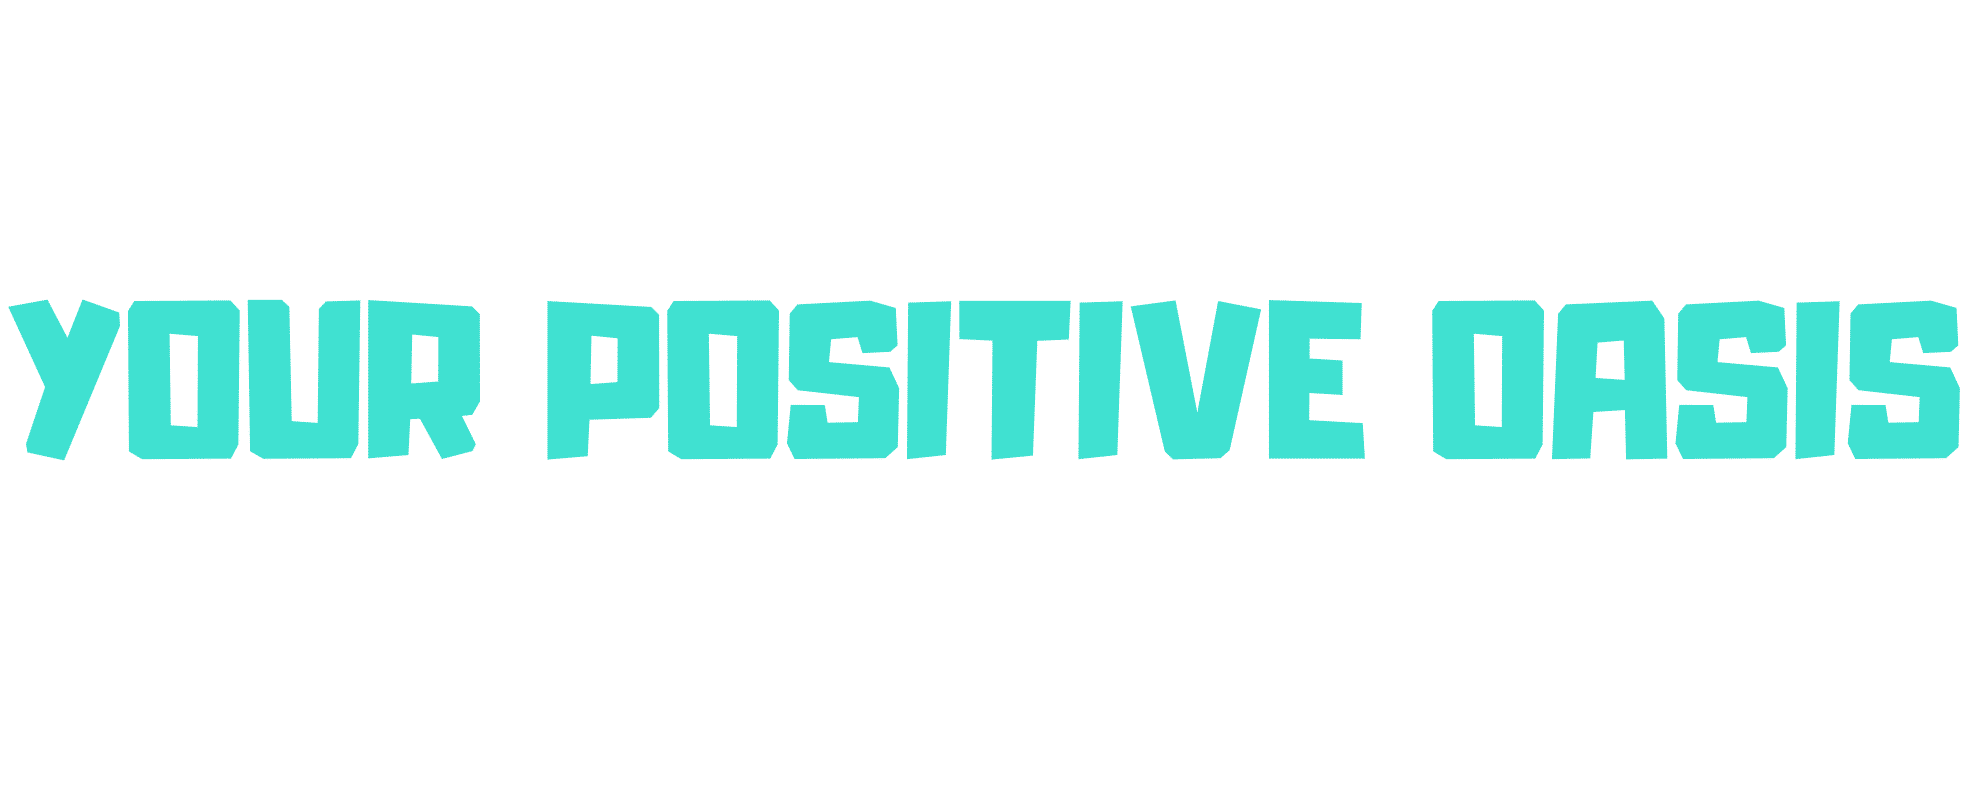 Your Positive Oasis